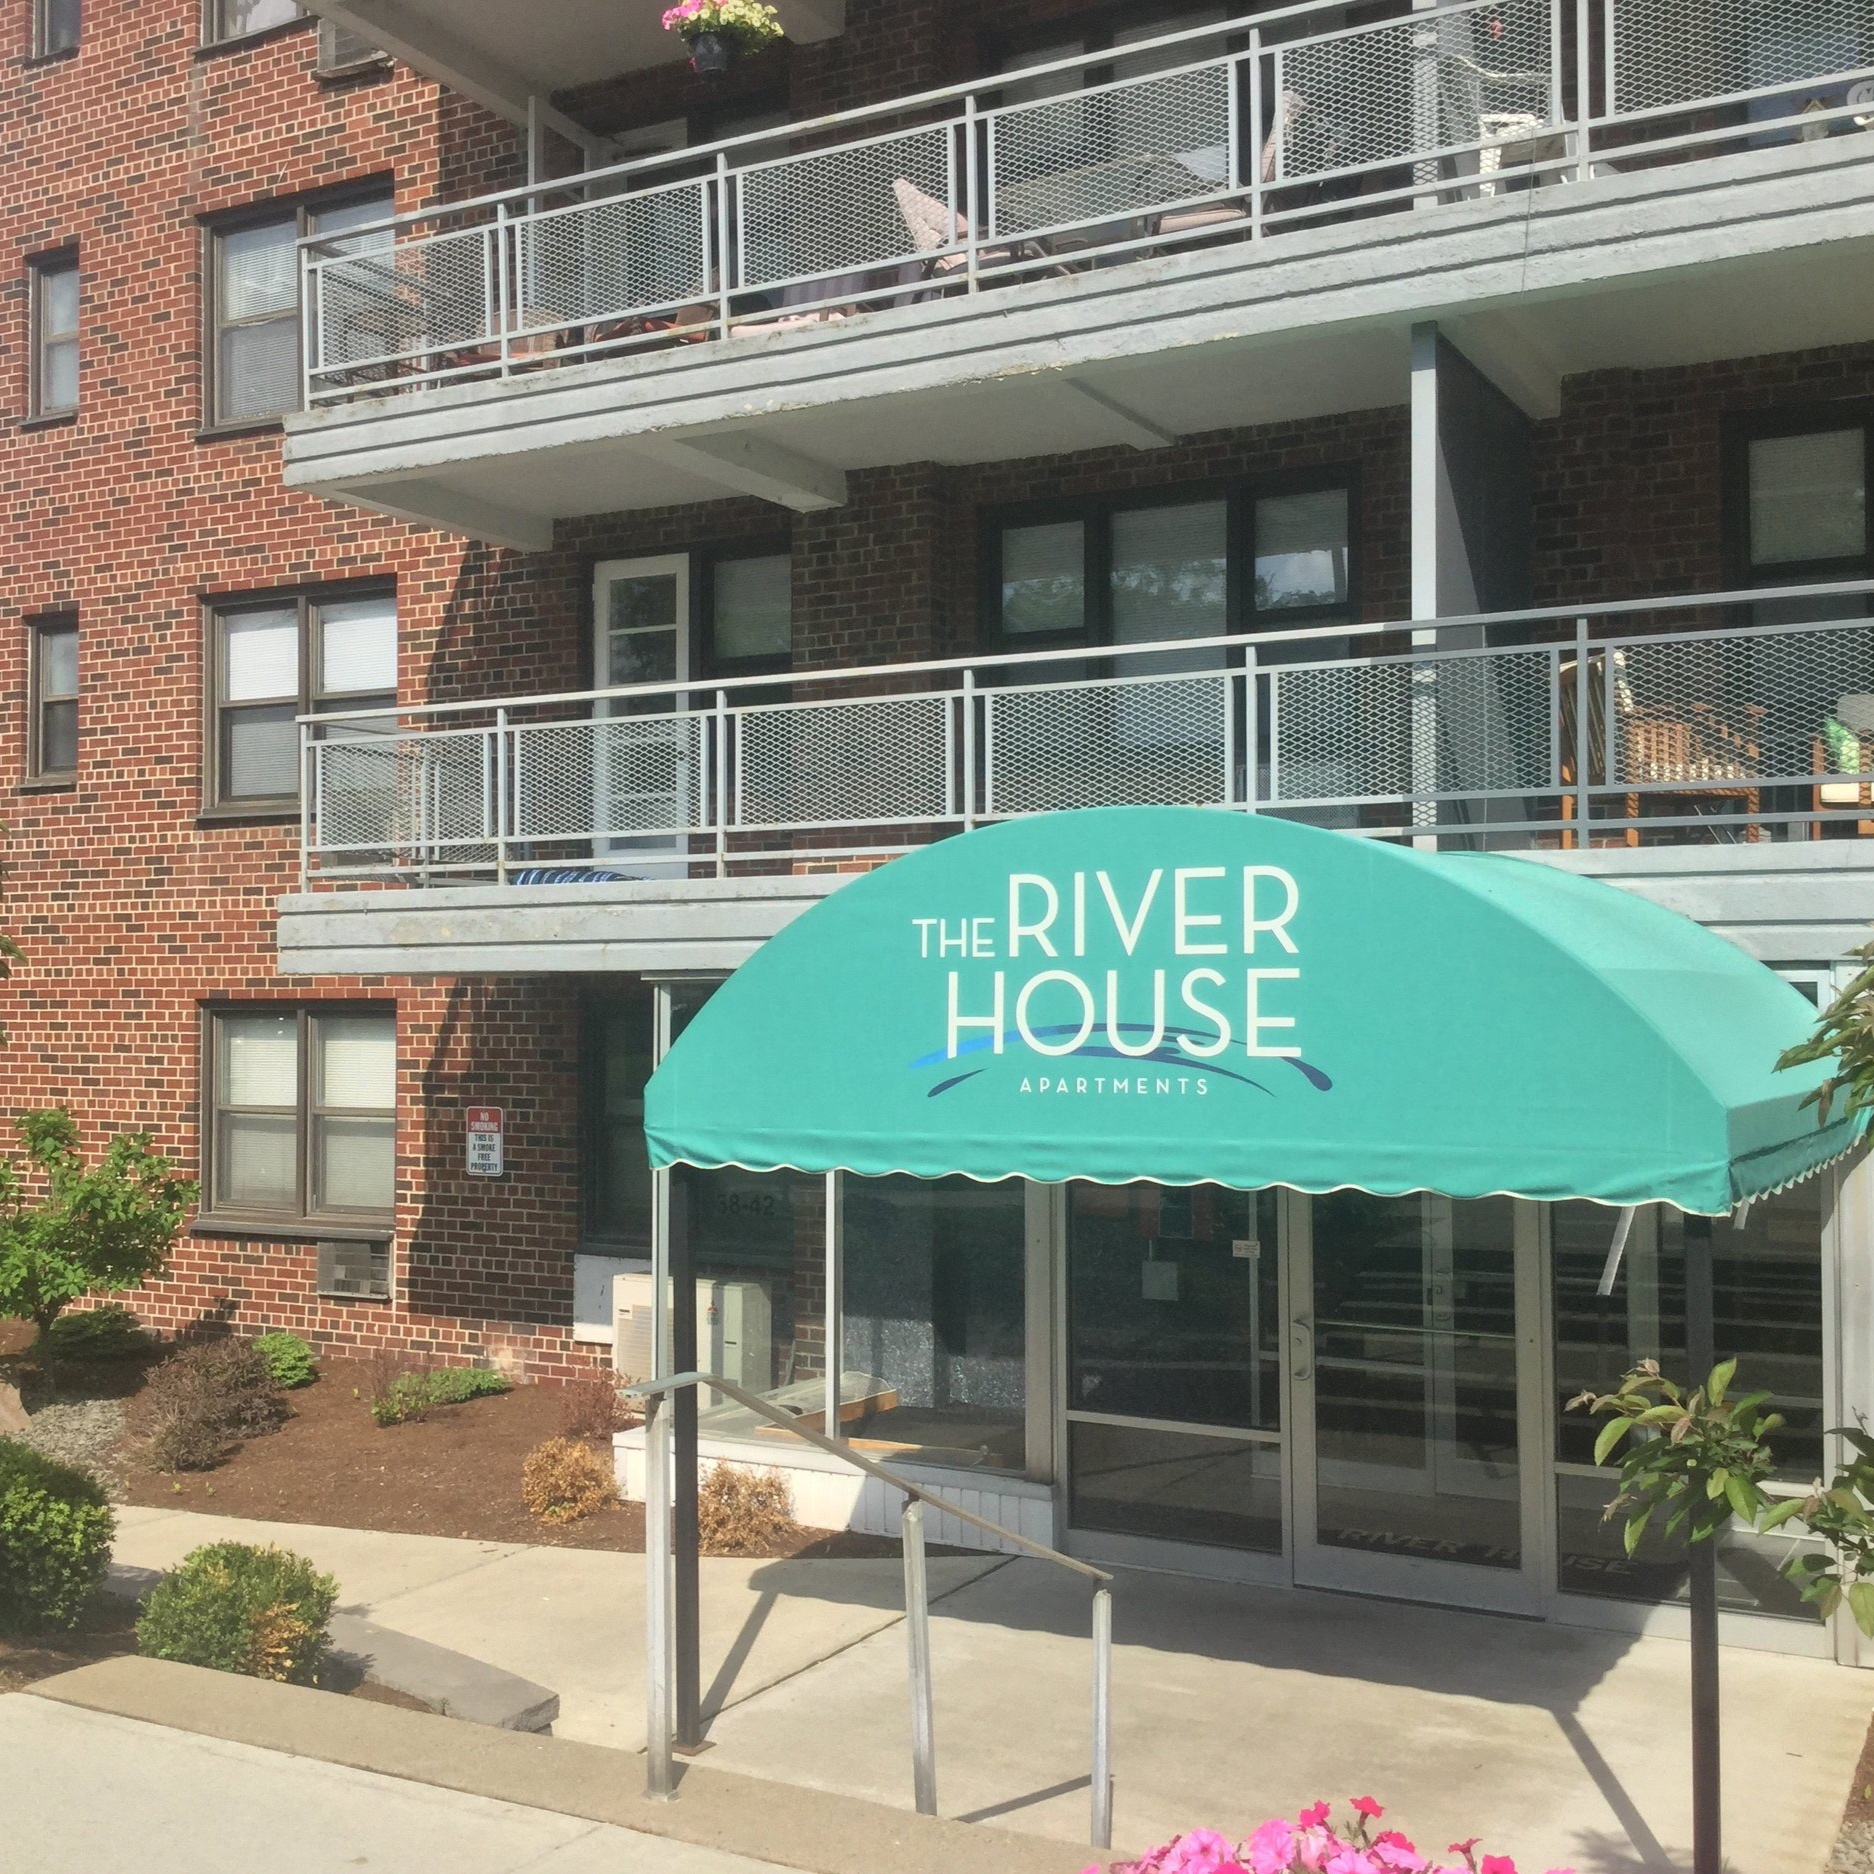 River House Office - 38 Front St.Binghamton, NY 13905Phone: 607.772.0456Fax: 607.773.7759Email: rhb@travishyde.com